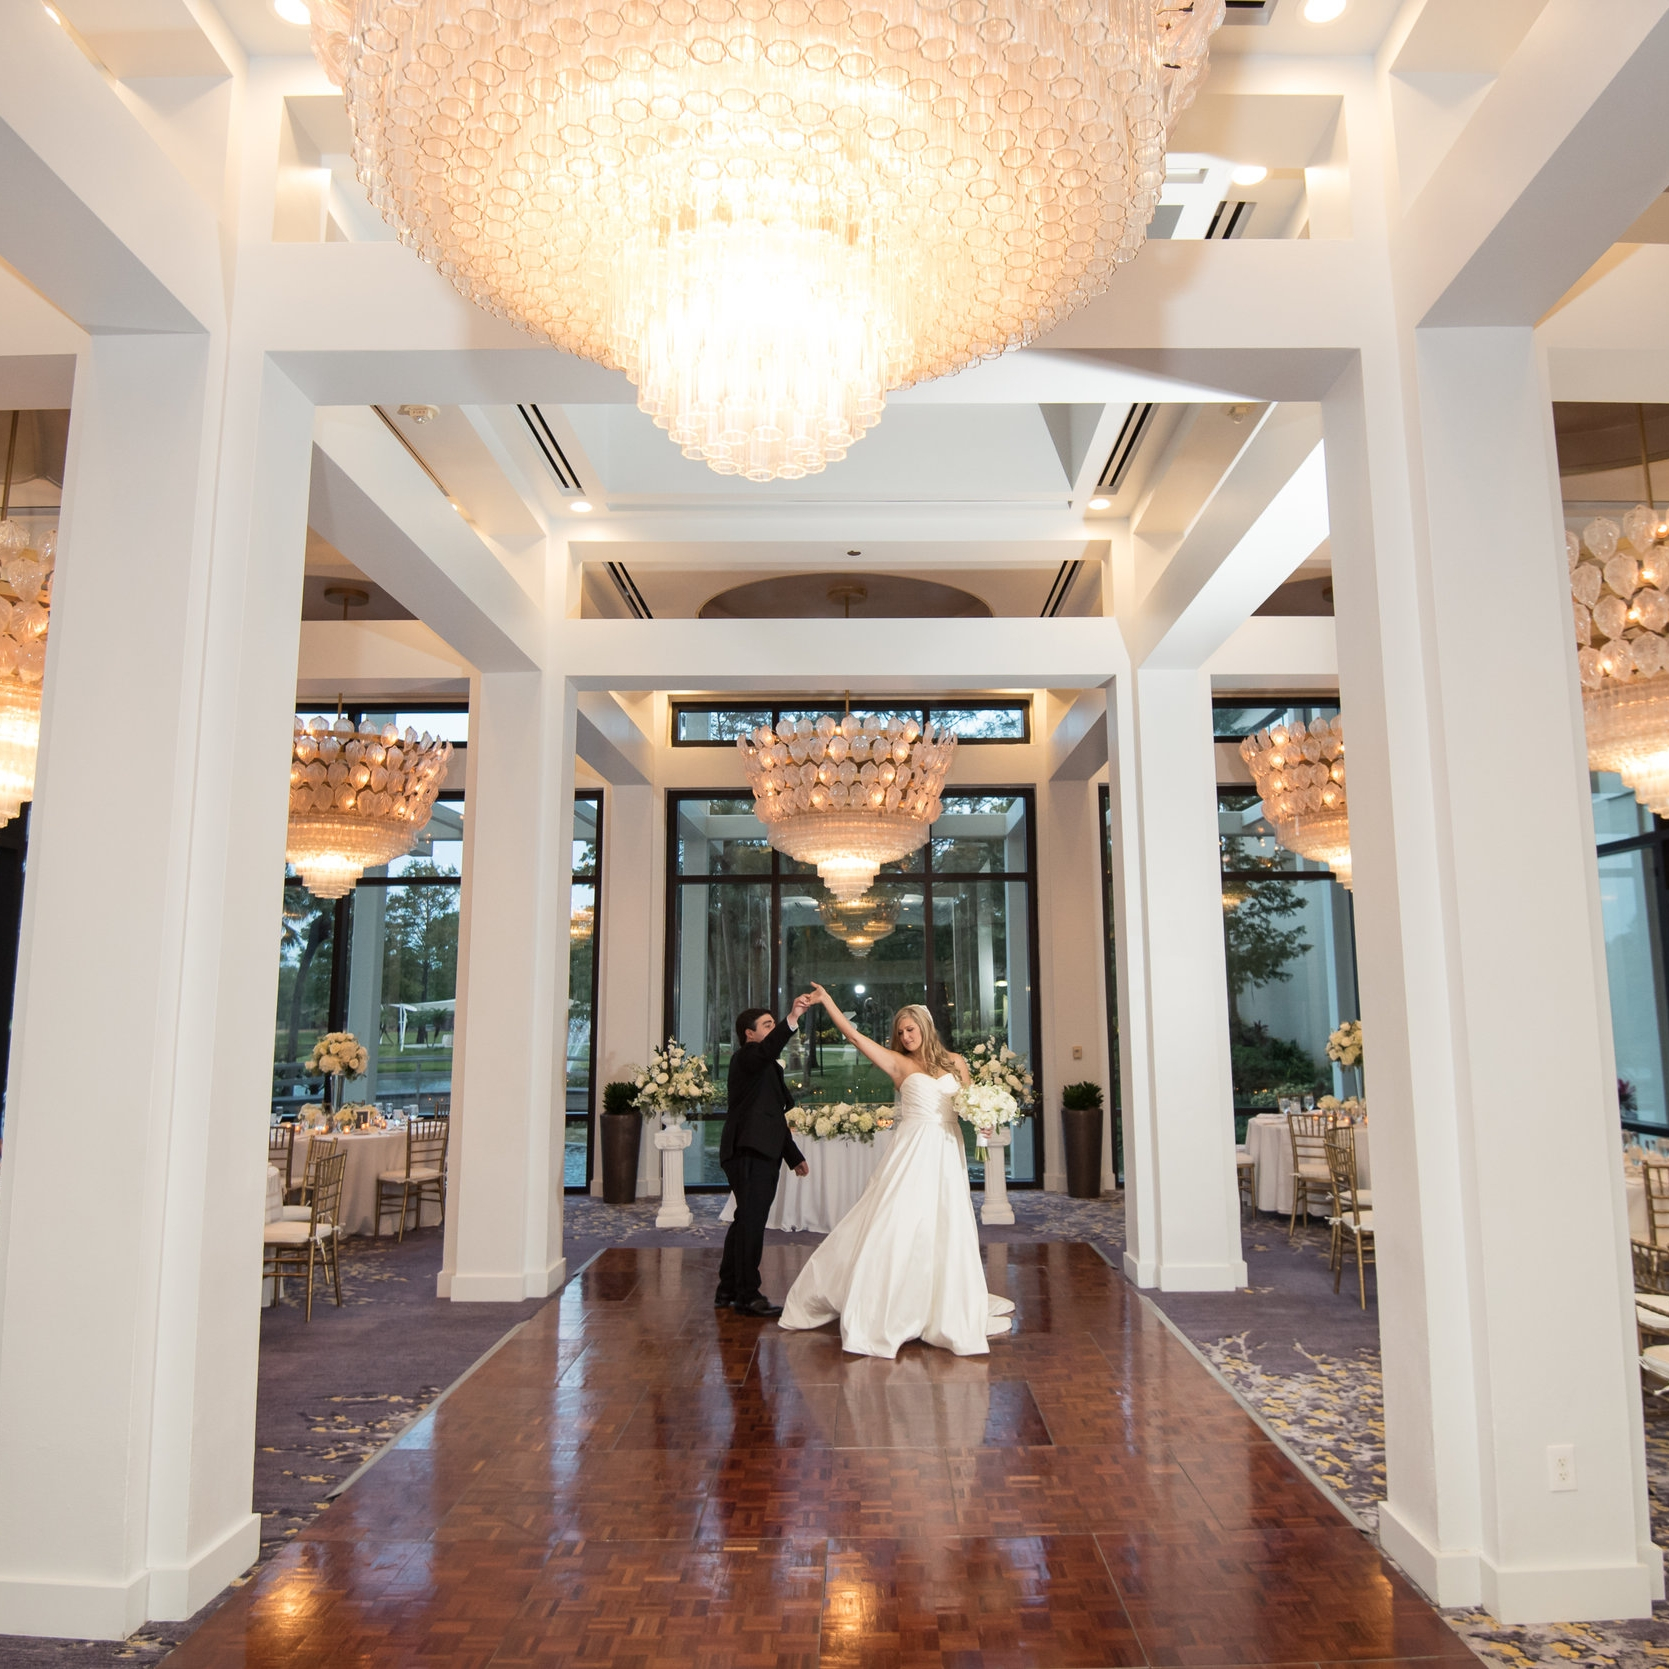 La Coquina   Floor to ceiling windows make this space a truly unique and beautiful option for either receptions or ceremonies.  Learn More >>